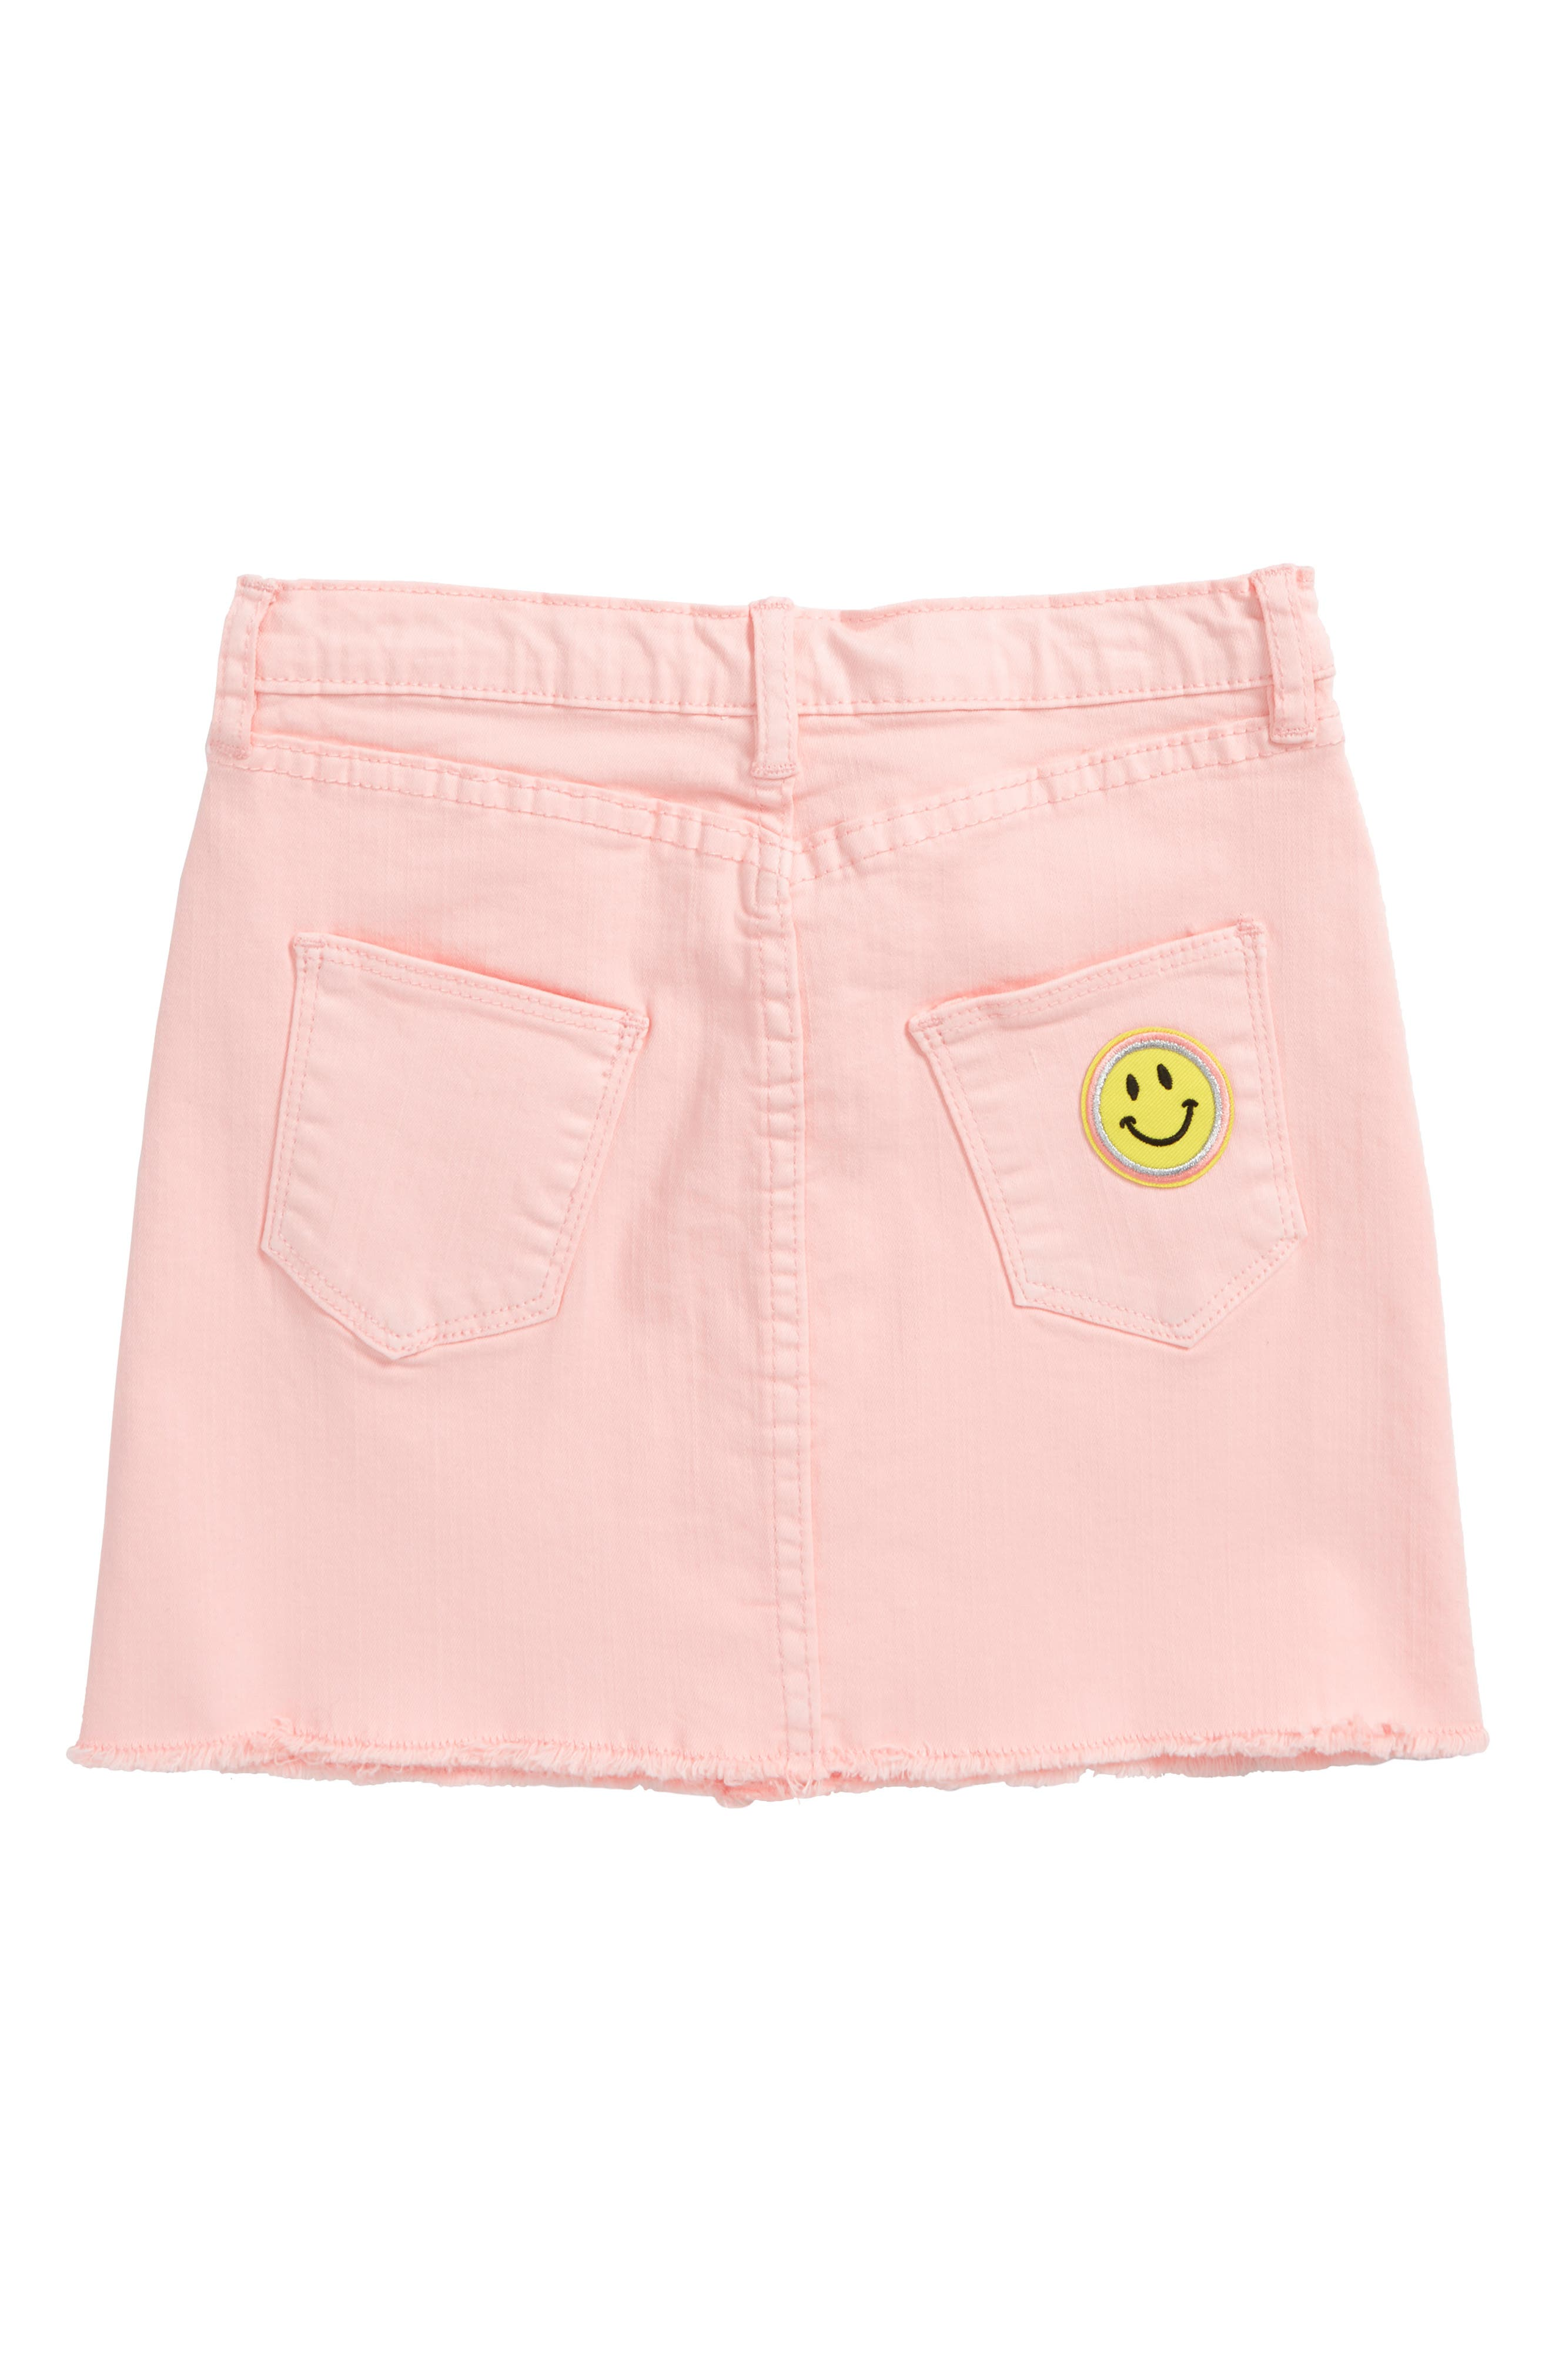 Flamingo Denim Skirt,                             Alternate thumbnail 2, color,